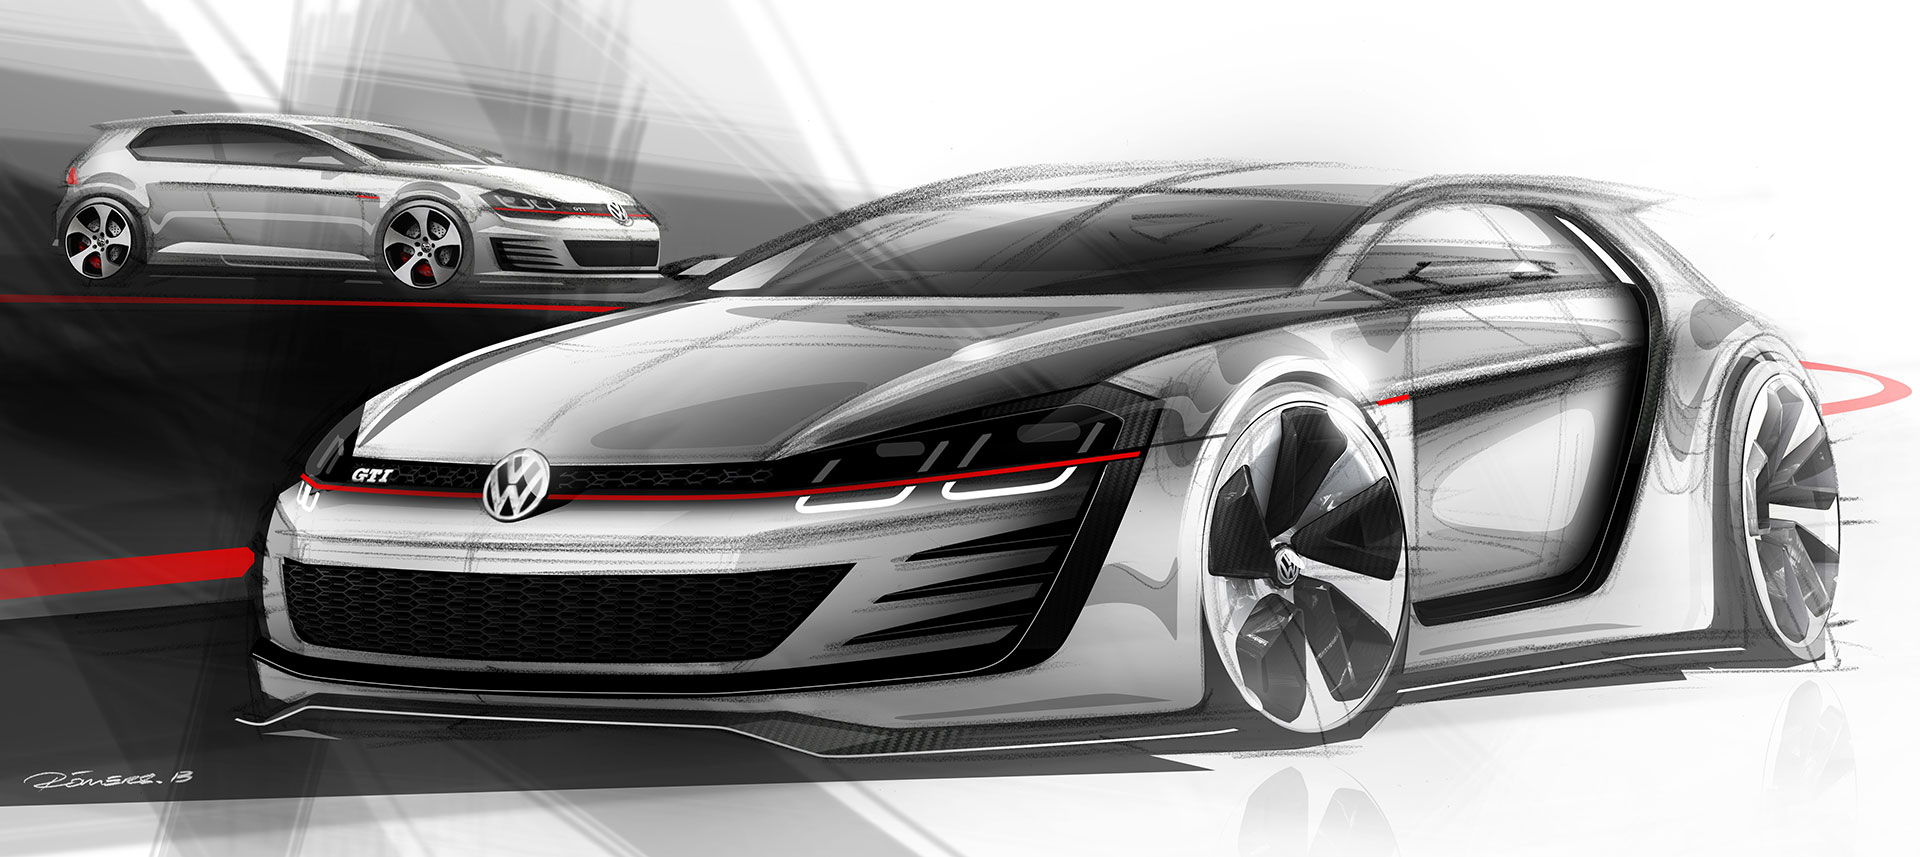 volkswagen previews design vision gti concept car body design. Black Bedroom Furniture Sets. Home Design Ideas